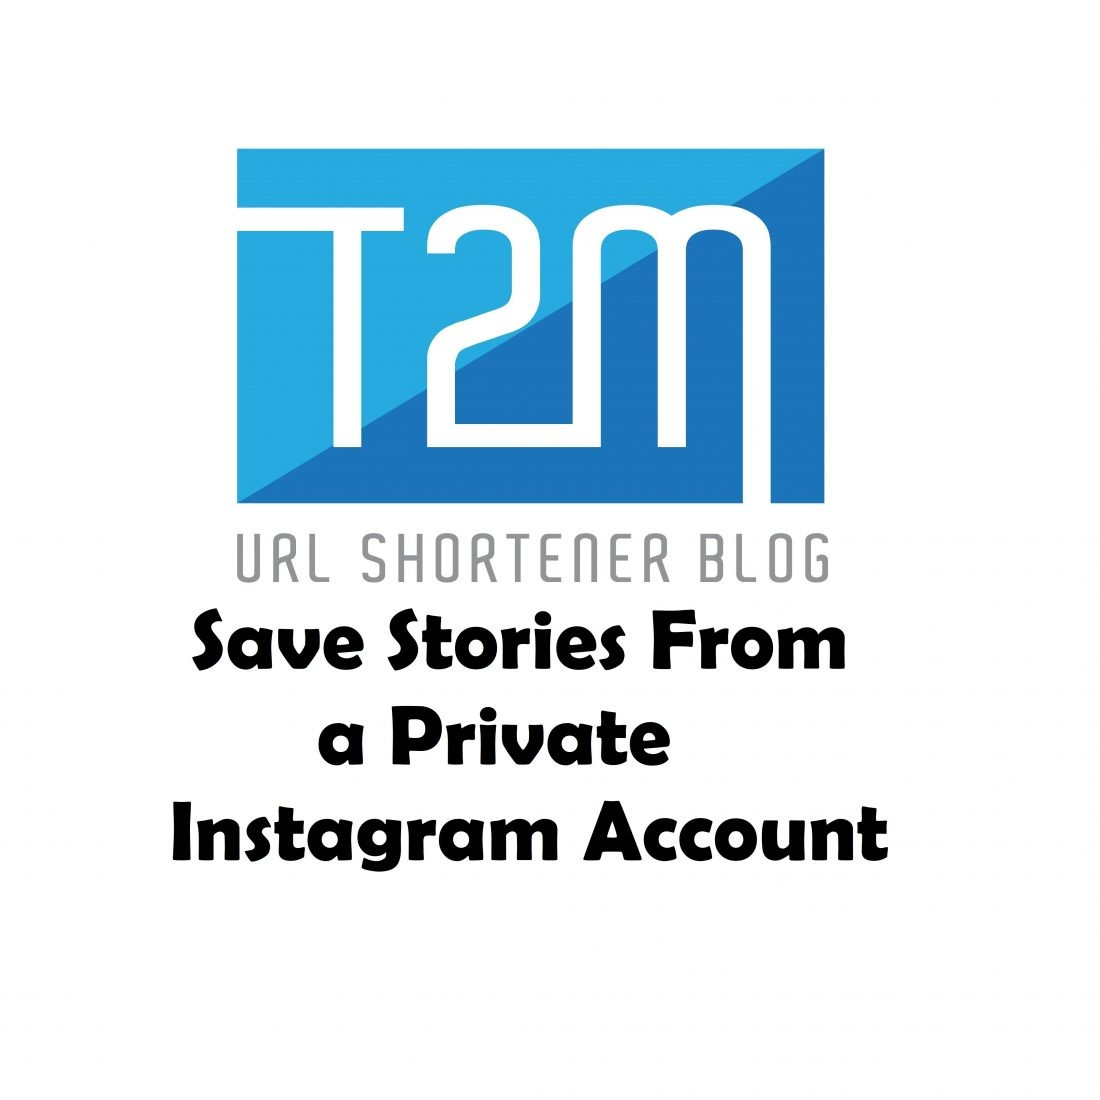 Save Stories From a Private Instagram Account | T2M Blog